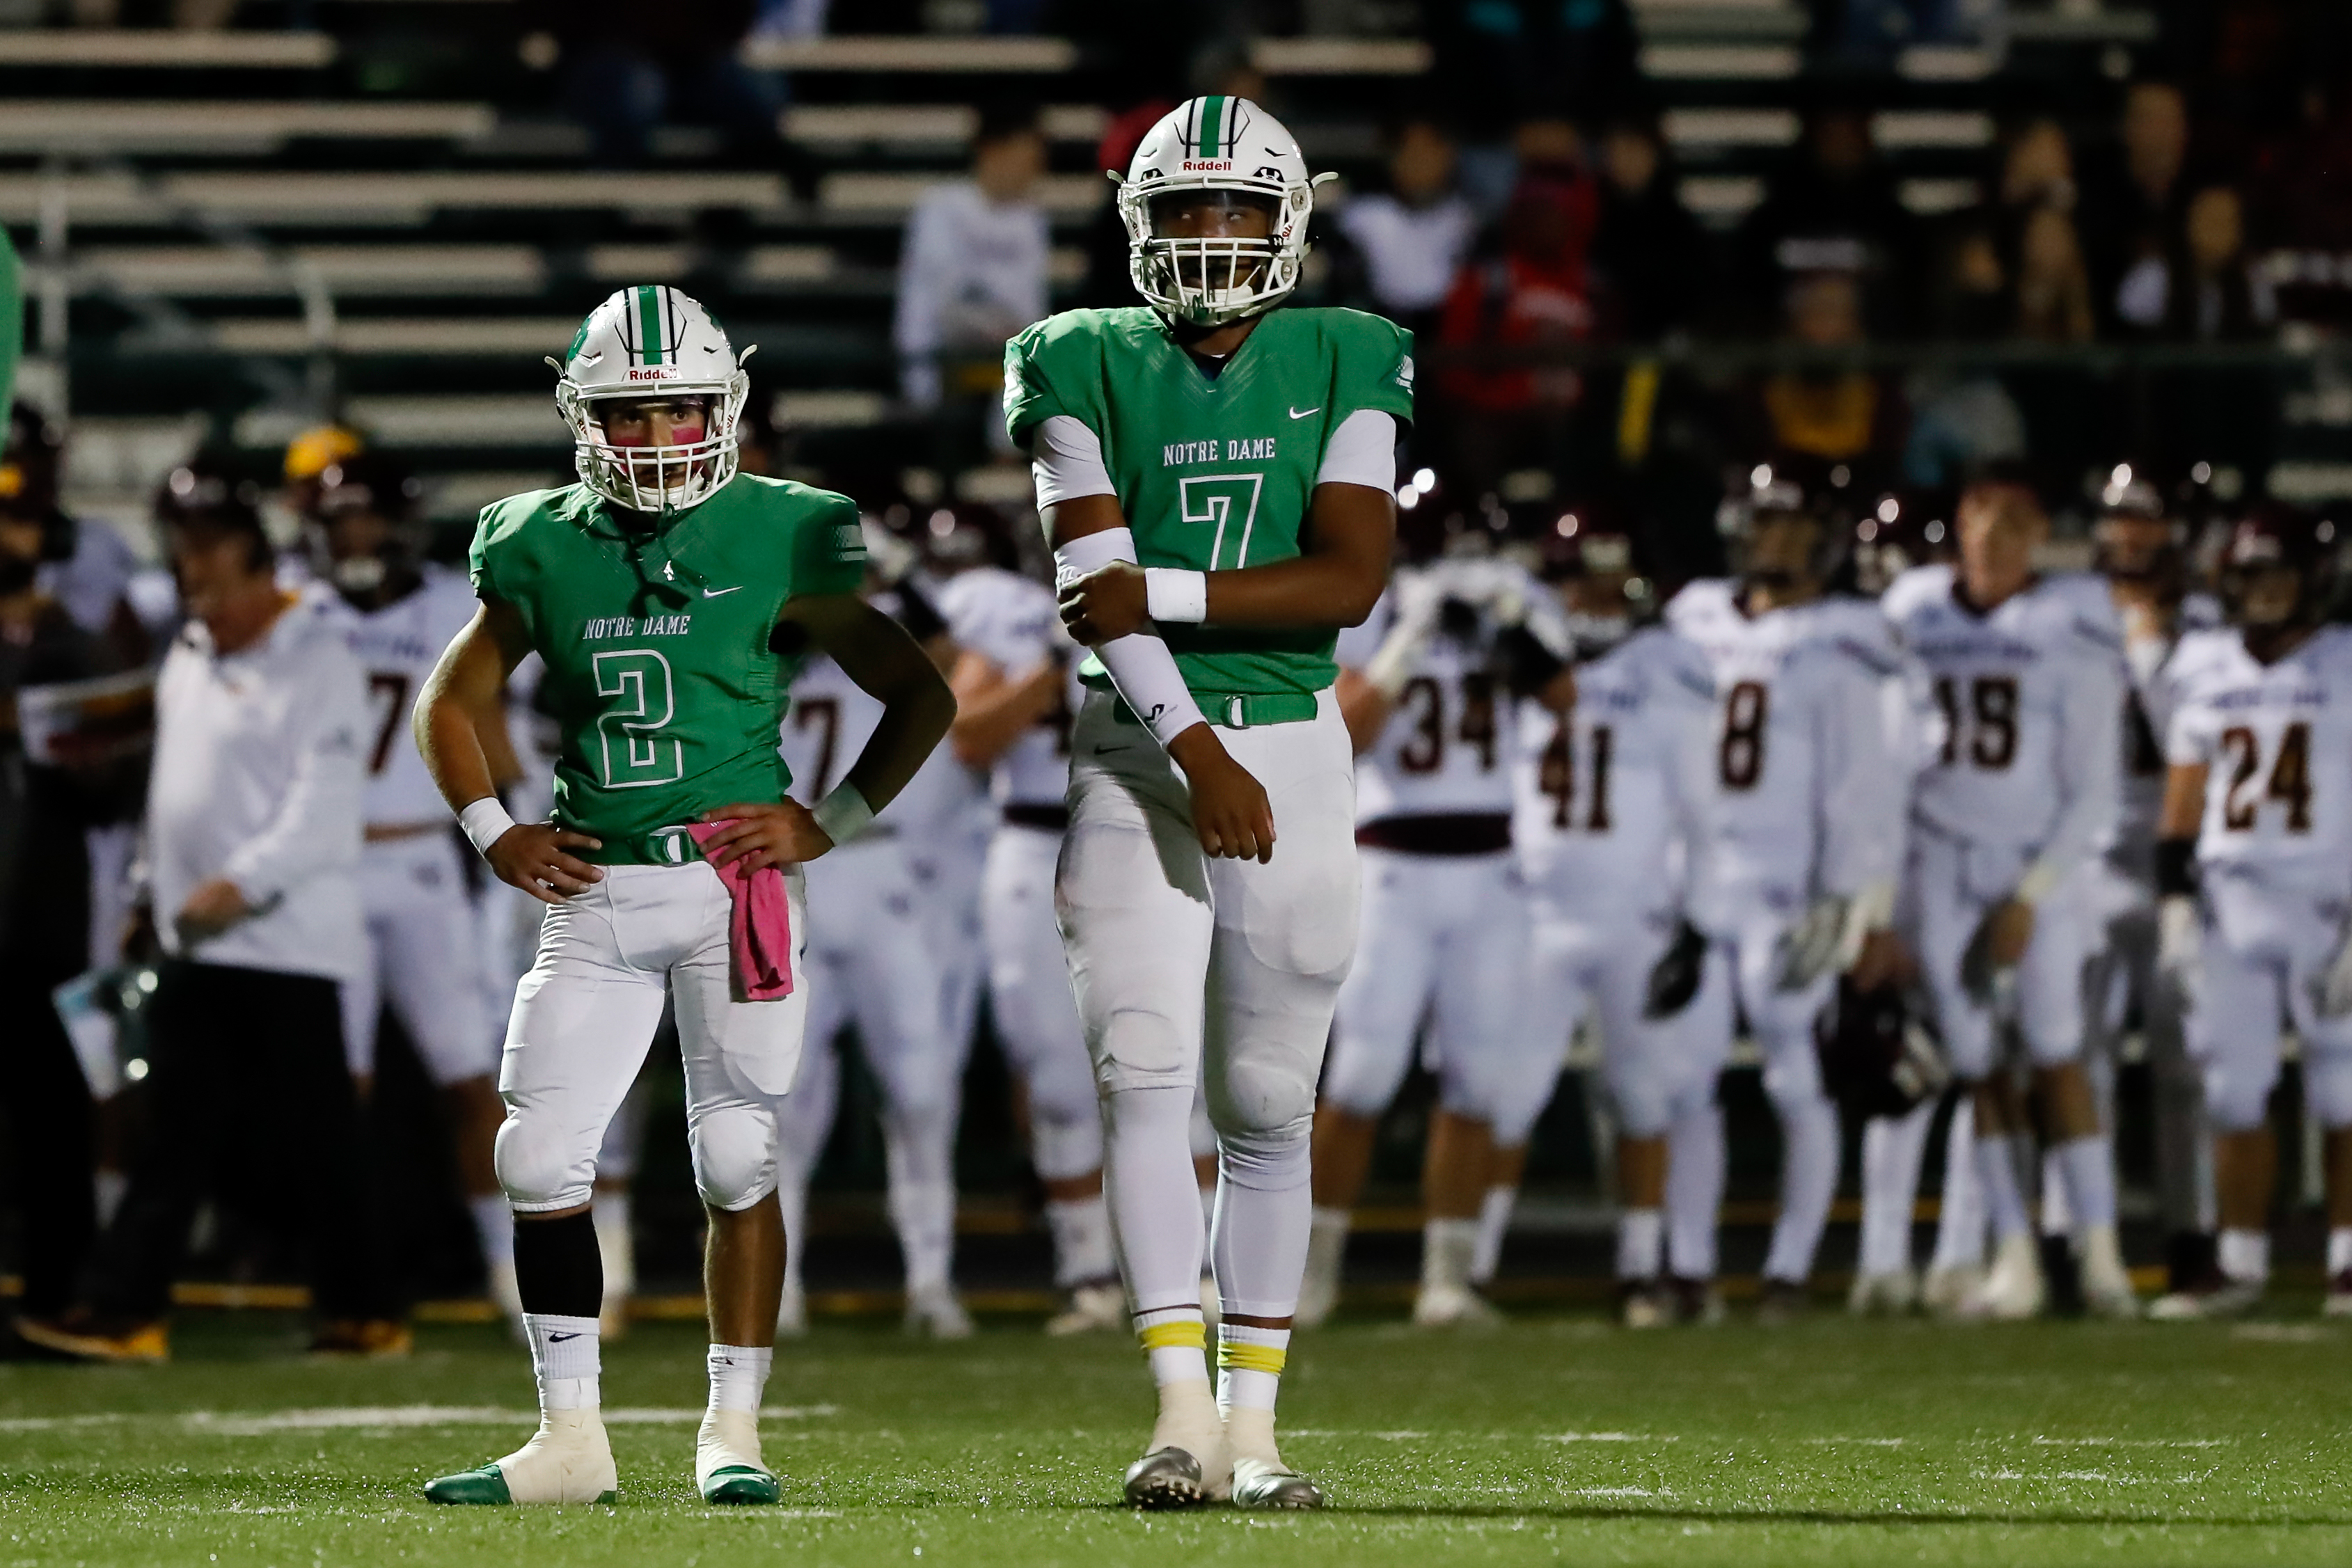 Notre Dame's Julian Schurr (2) and Anthony Sayles (7) wait for play to resume during the game against Montini.